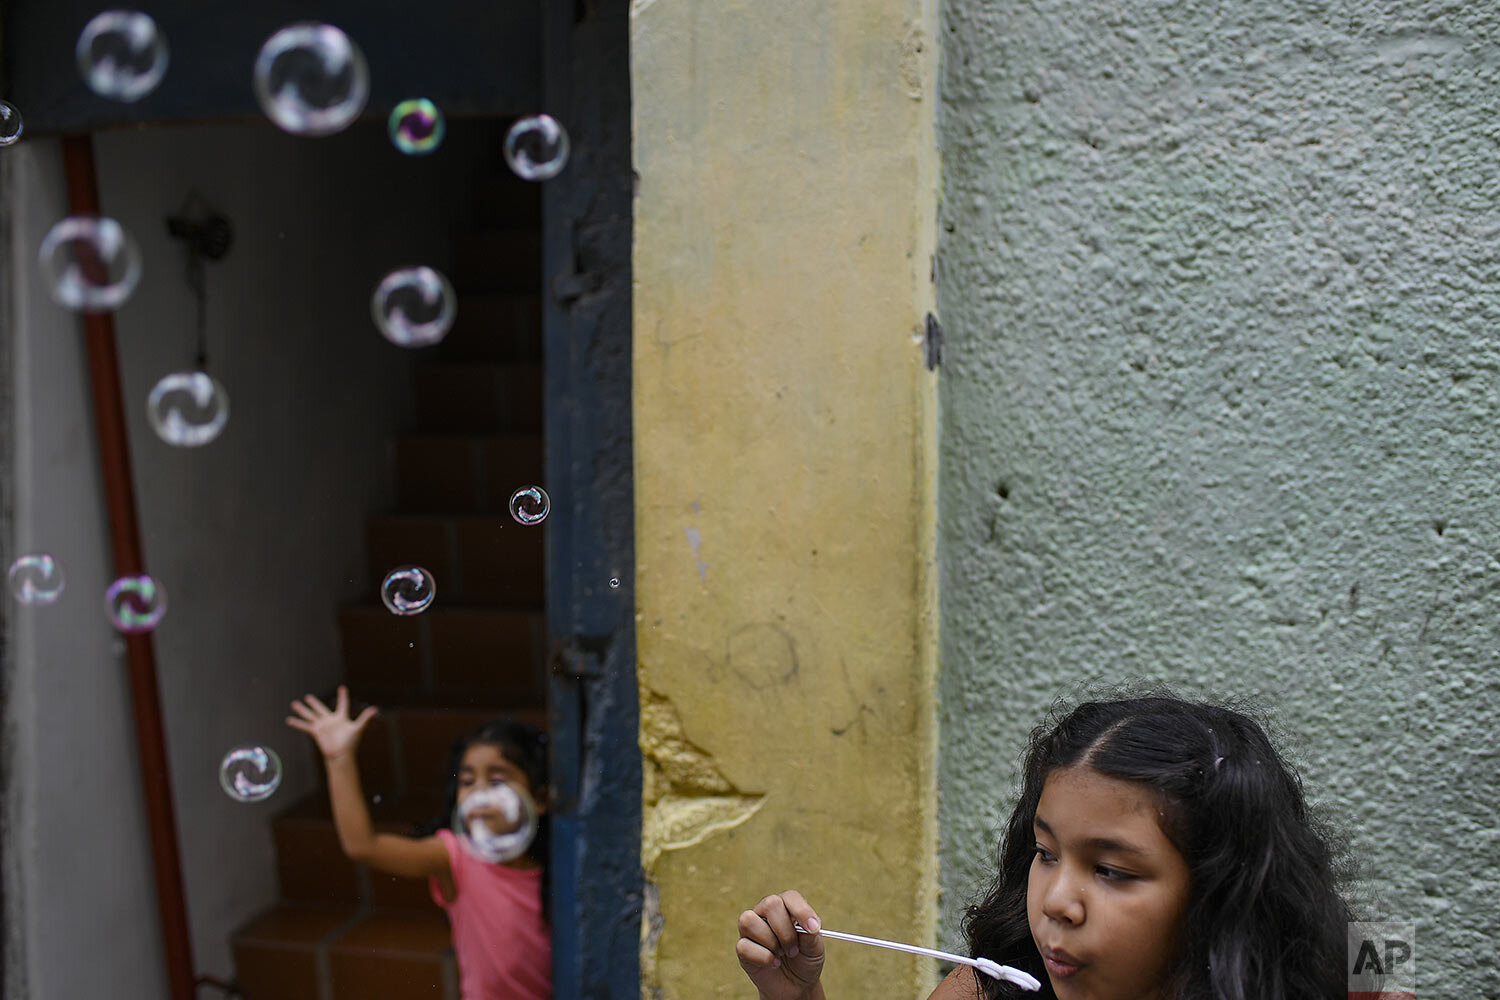 Sisters play with soap bubbles in the Catia neighborhood on Christmas Day in Caracas, Venezuela, Friday, Dec. 25, 2020, amid the new coronavirus pandemic. (AP Photo/Matias Delacroix)